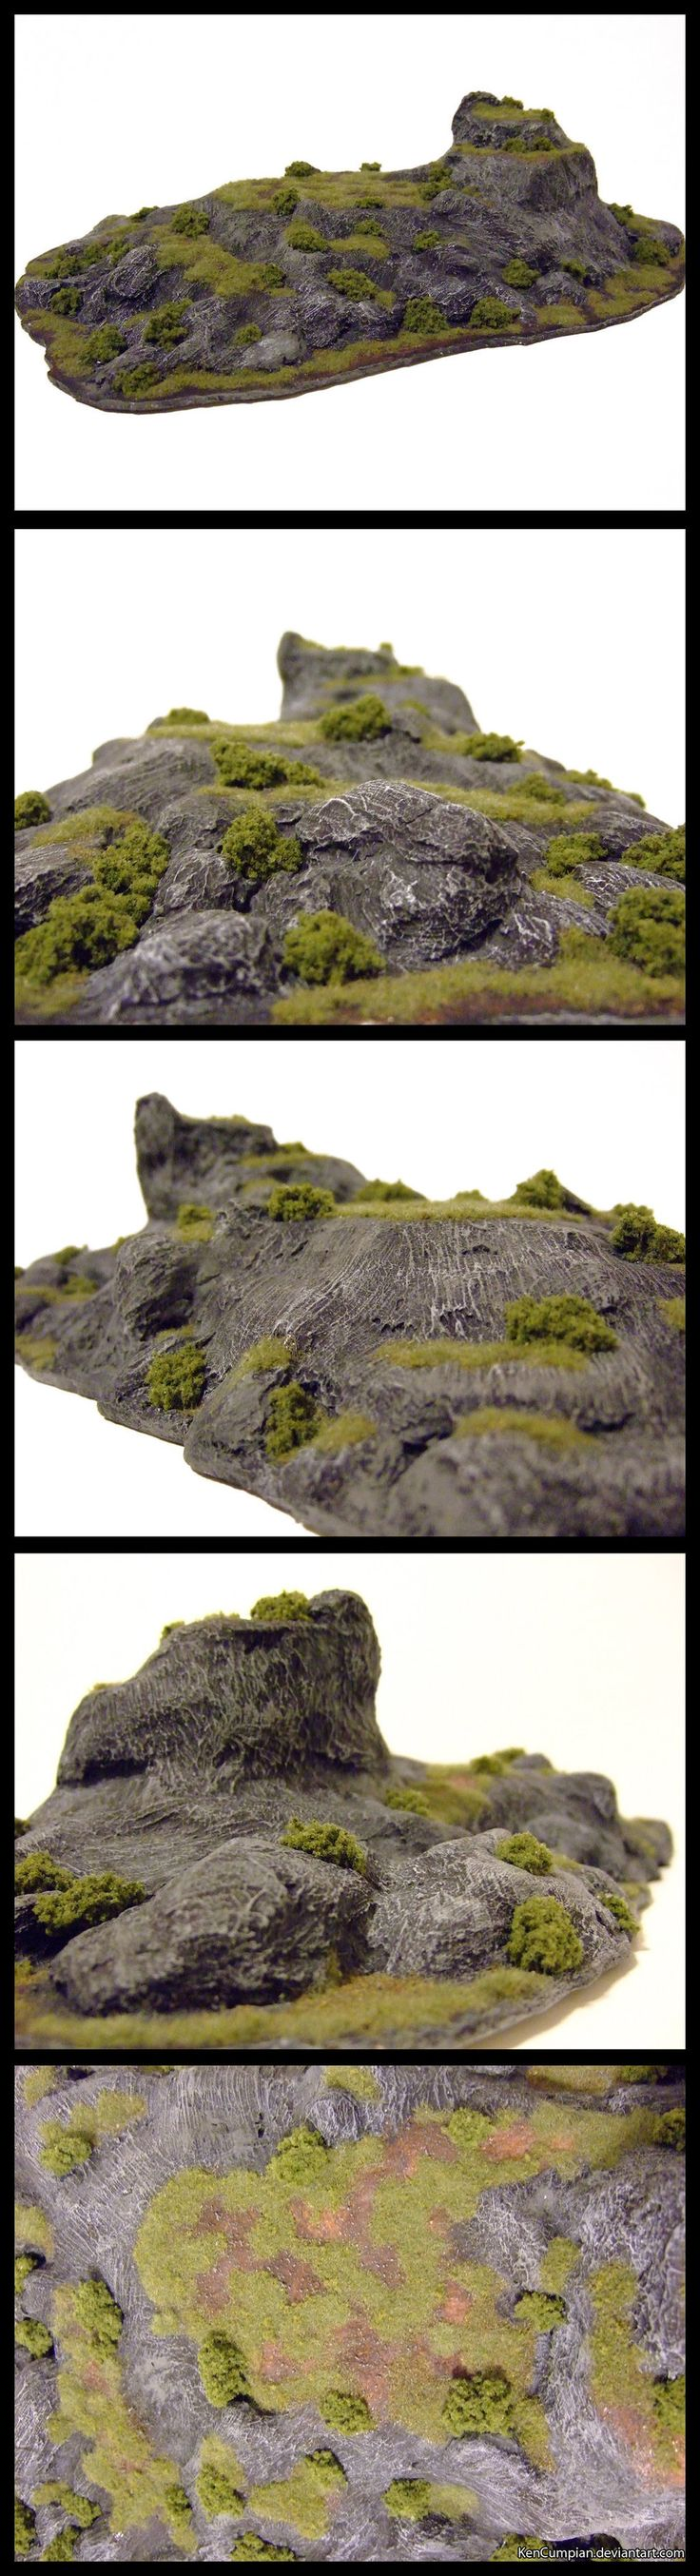 -Wargame Terrain- I tried something a little different this time around. I picked up some filler at the hardware store recently and gave it a go. I don't like how long it takes to dry, but it ...